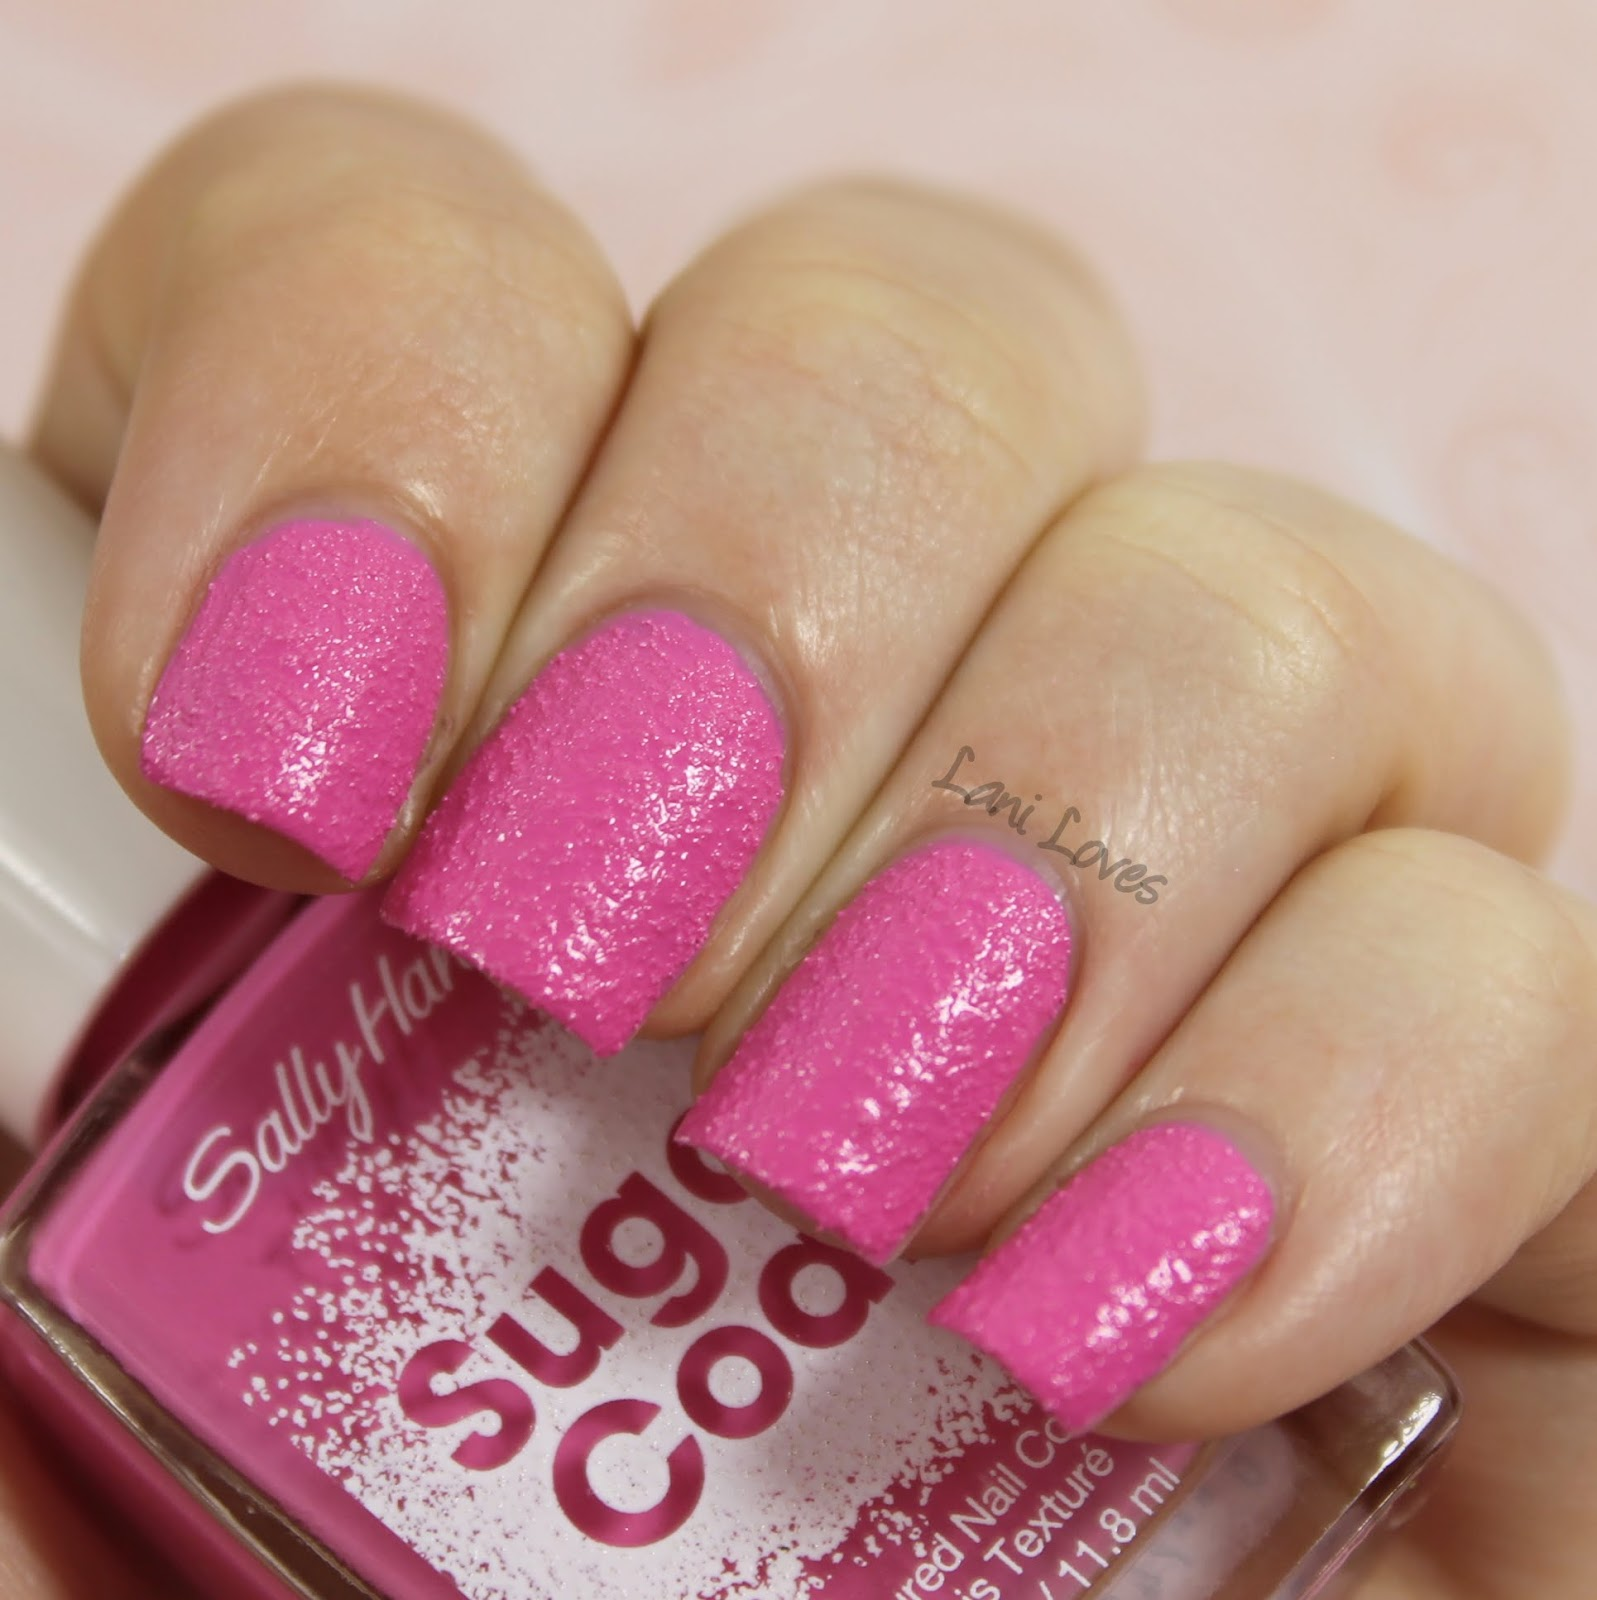 Sally Hansen Sugar Coat Cotton Candies Swatch